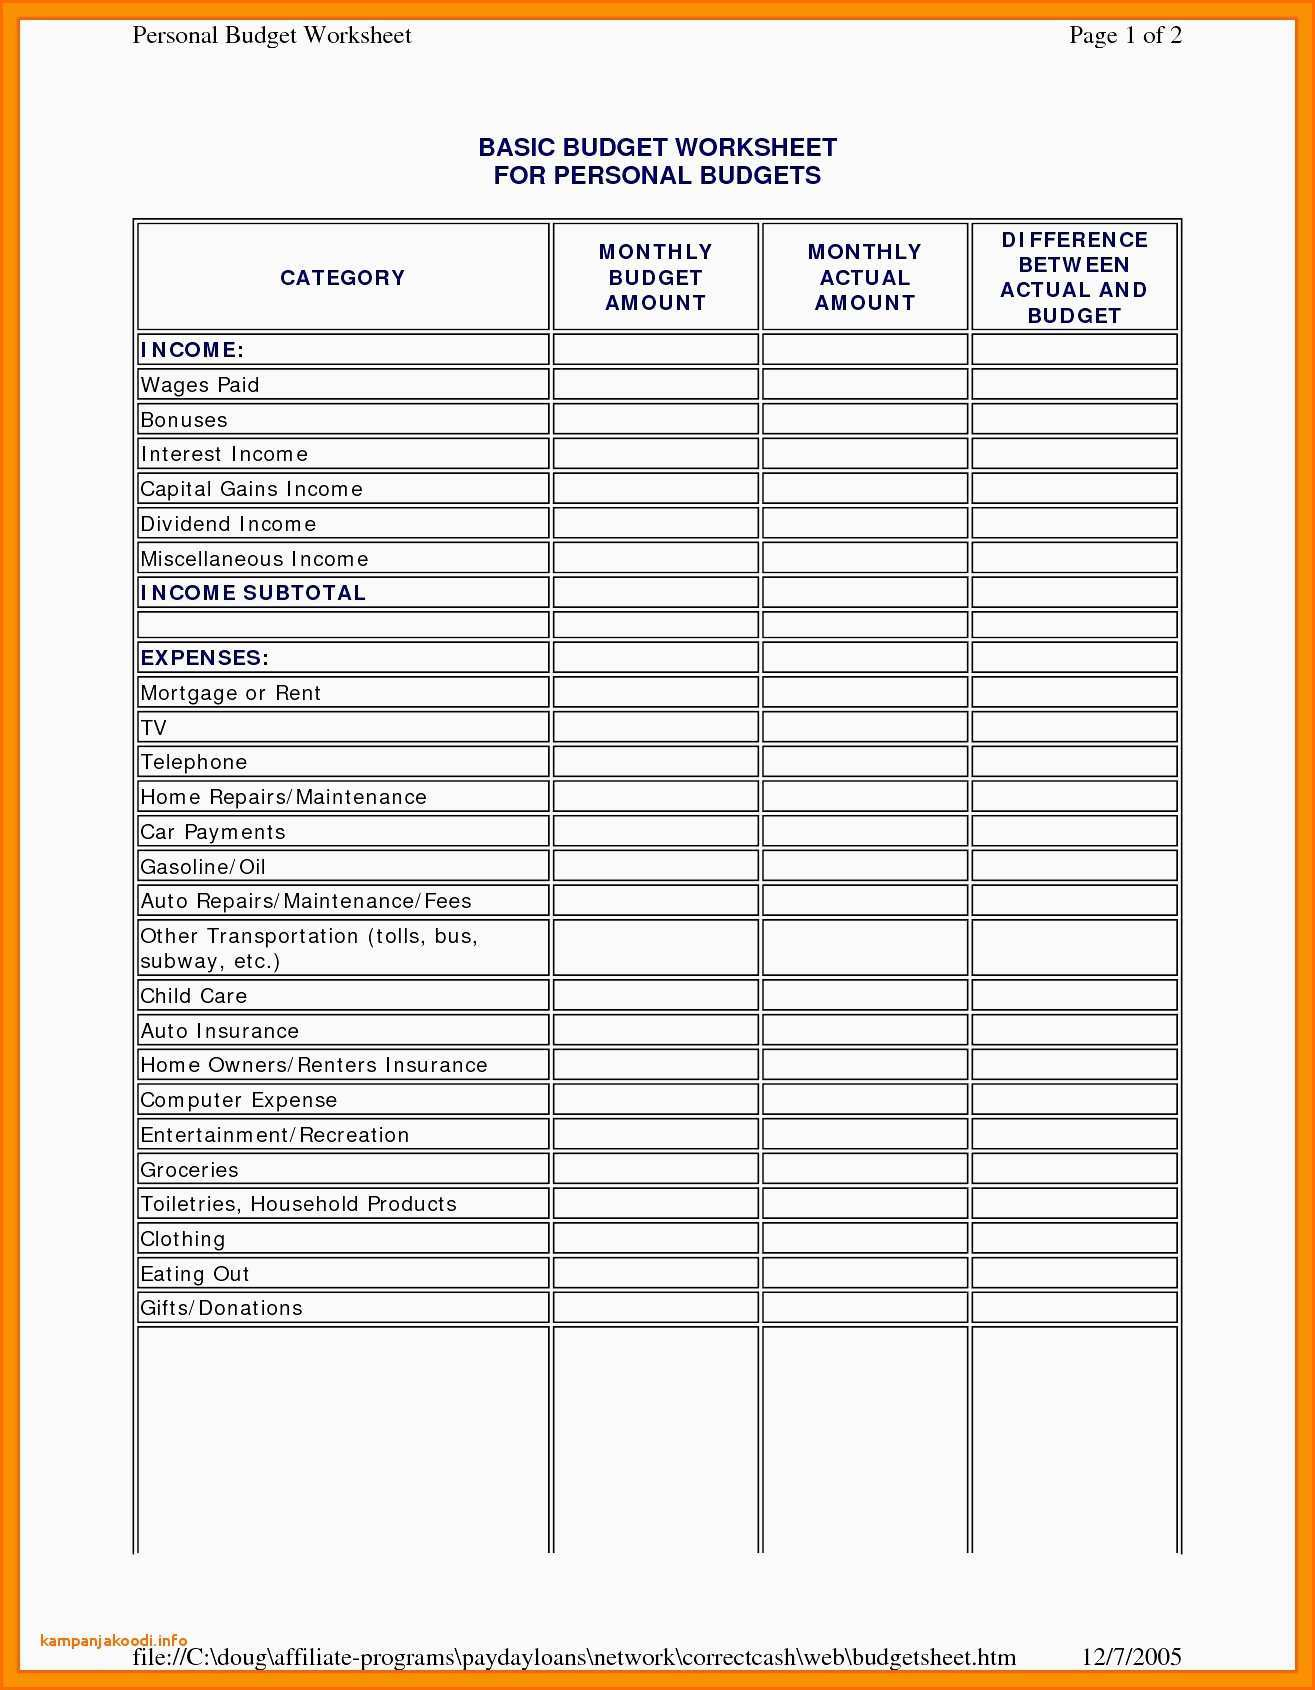 Tire Inventory Spreadsheet Intended For Bakery Inventory Spreadsheet Free Template  Bardwellparkphysiotherapy